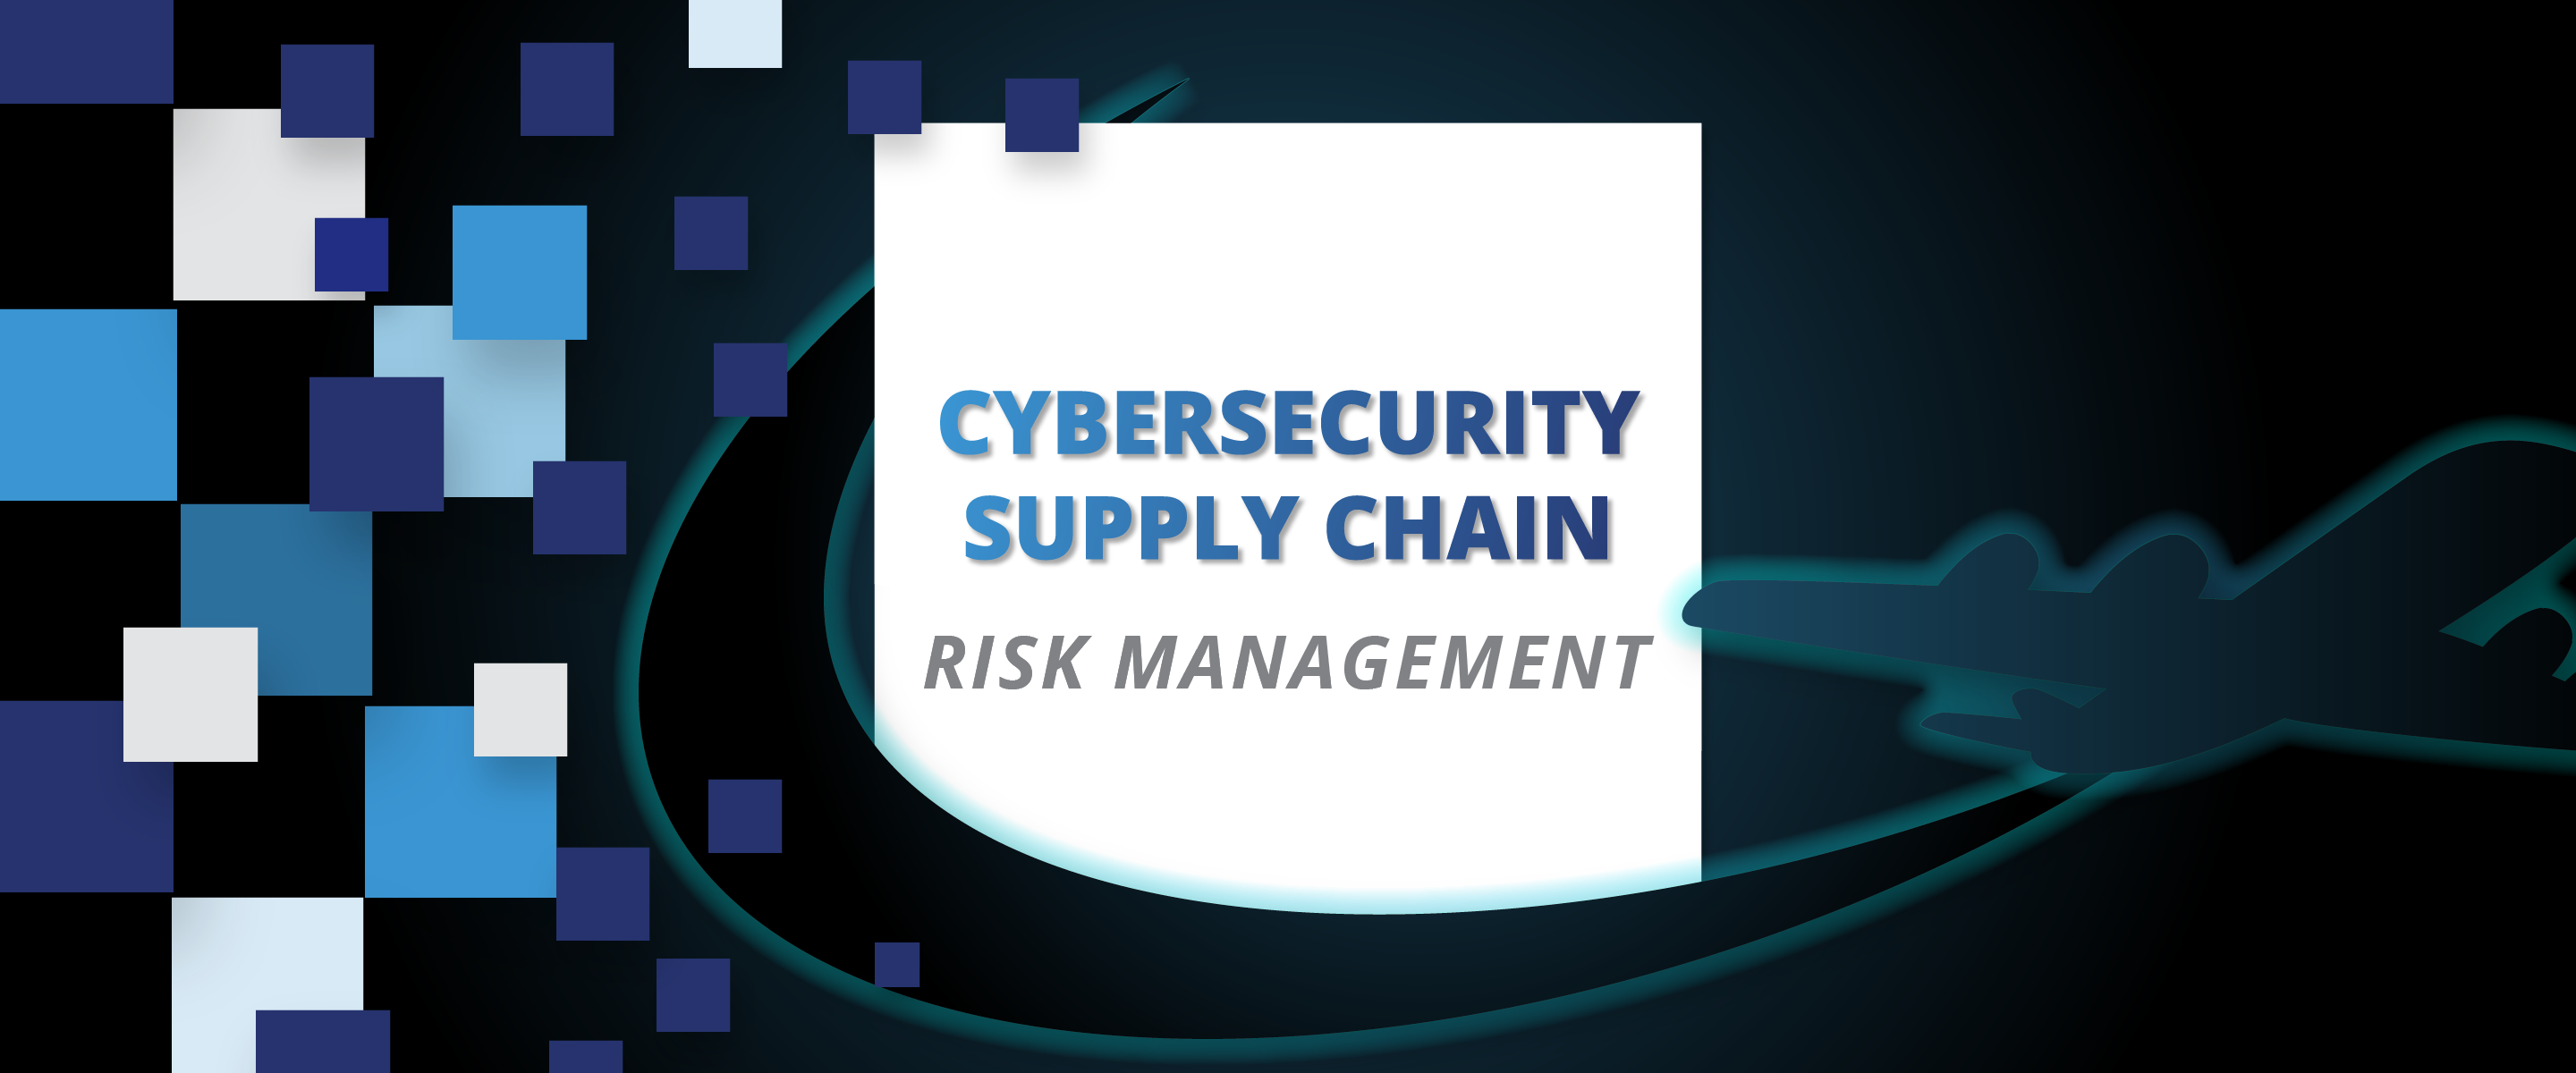 Cybersecurity Supply Chain Risk Management